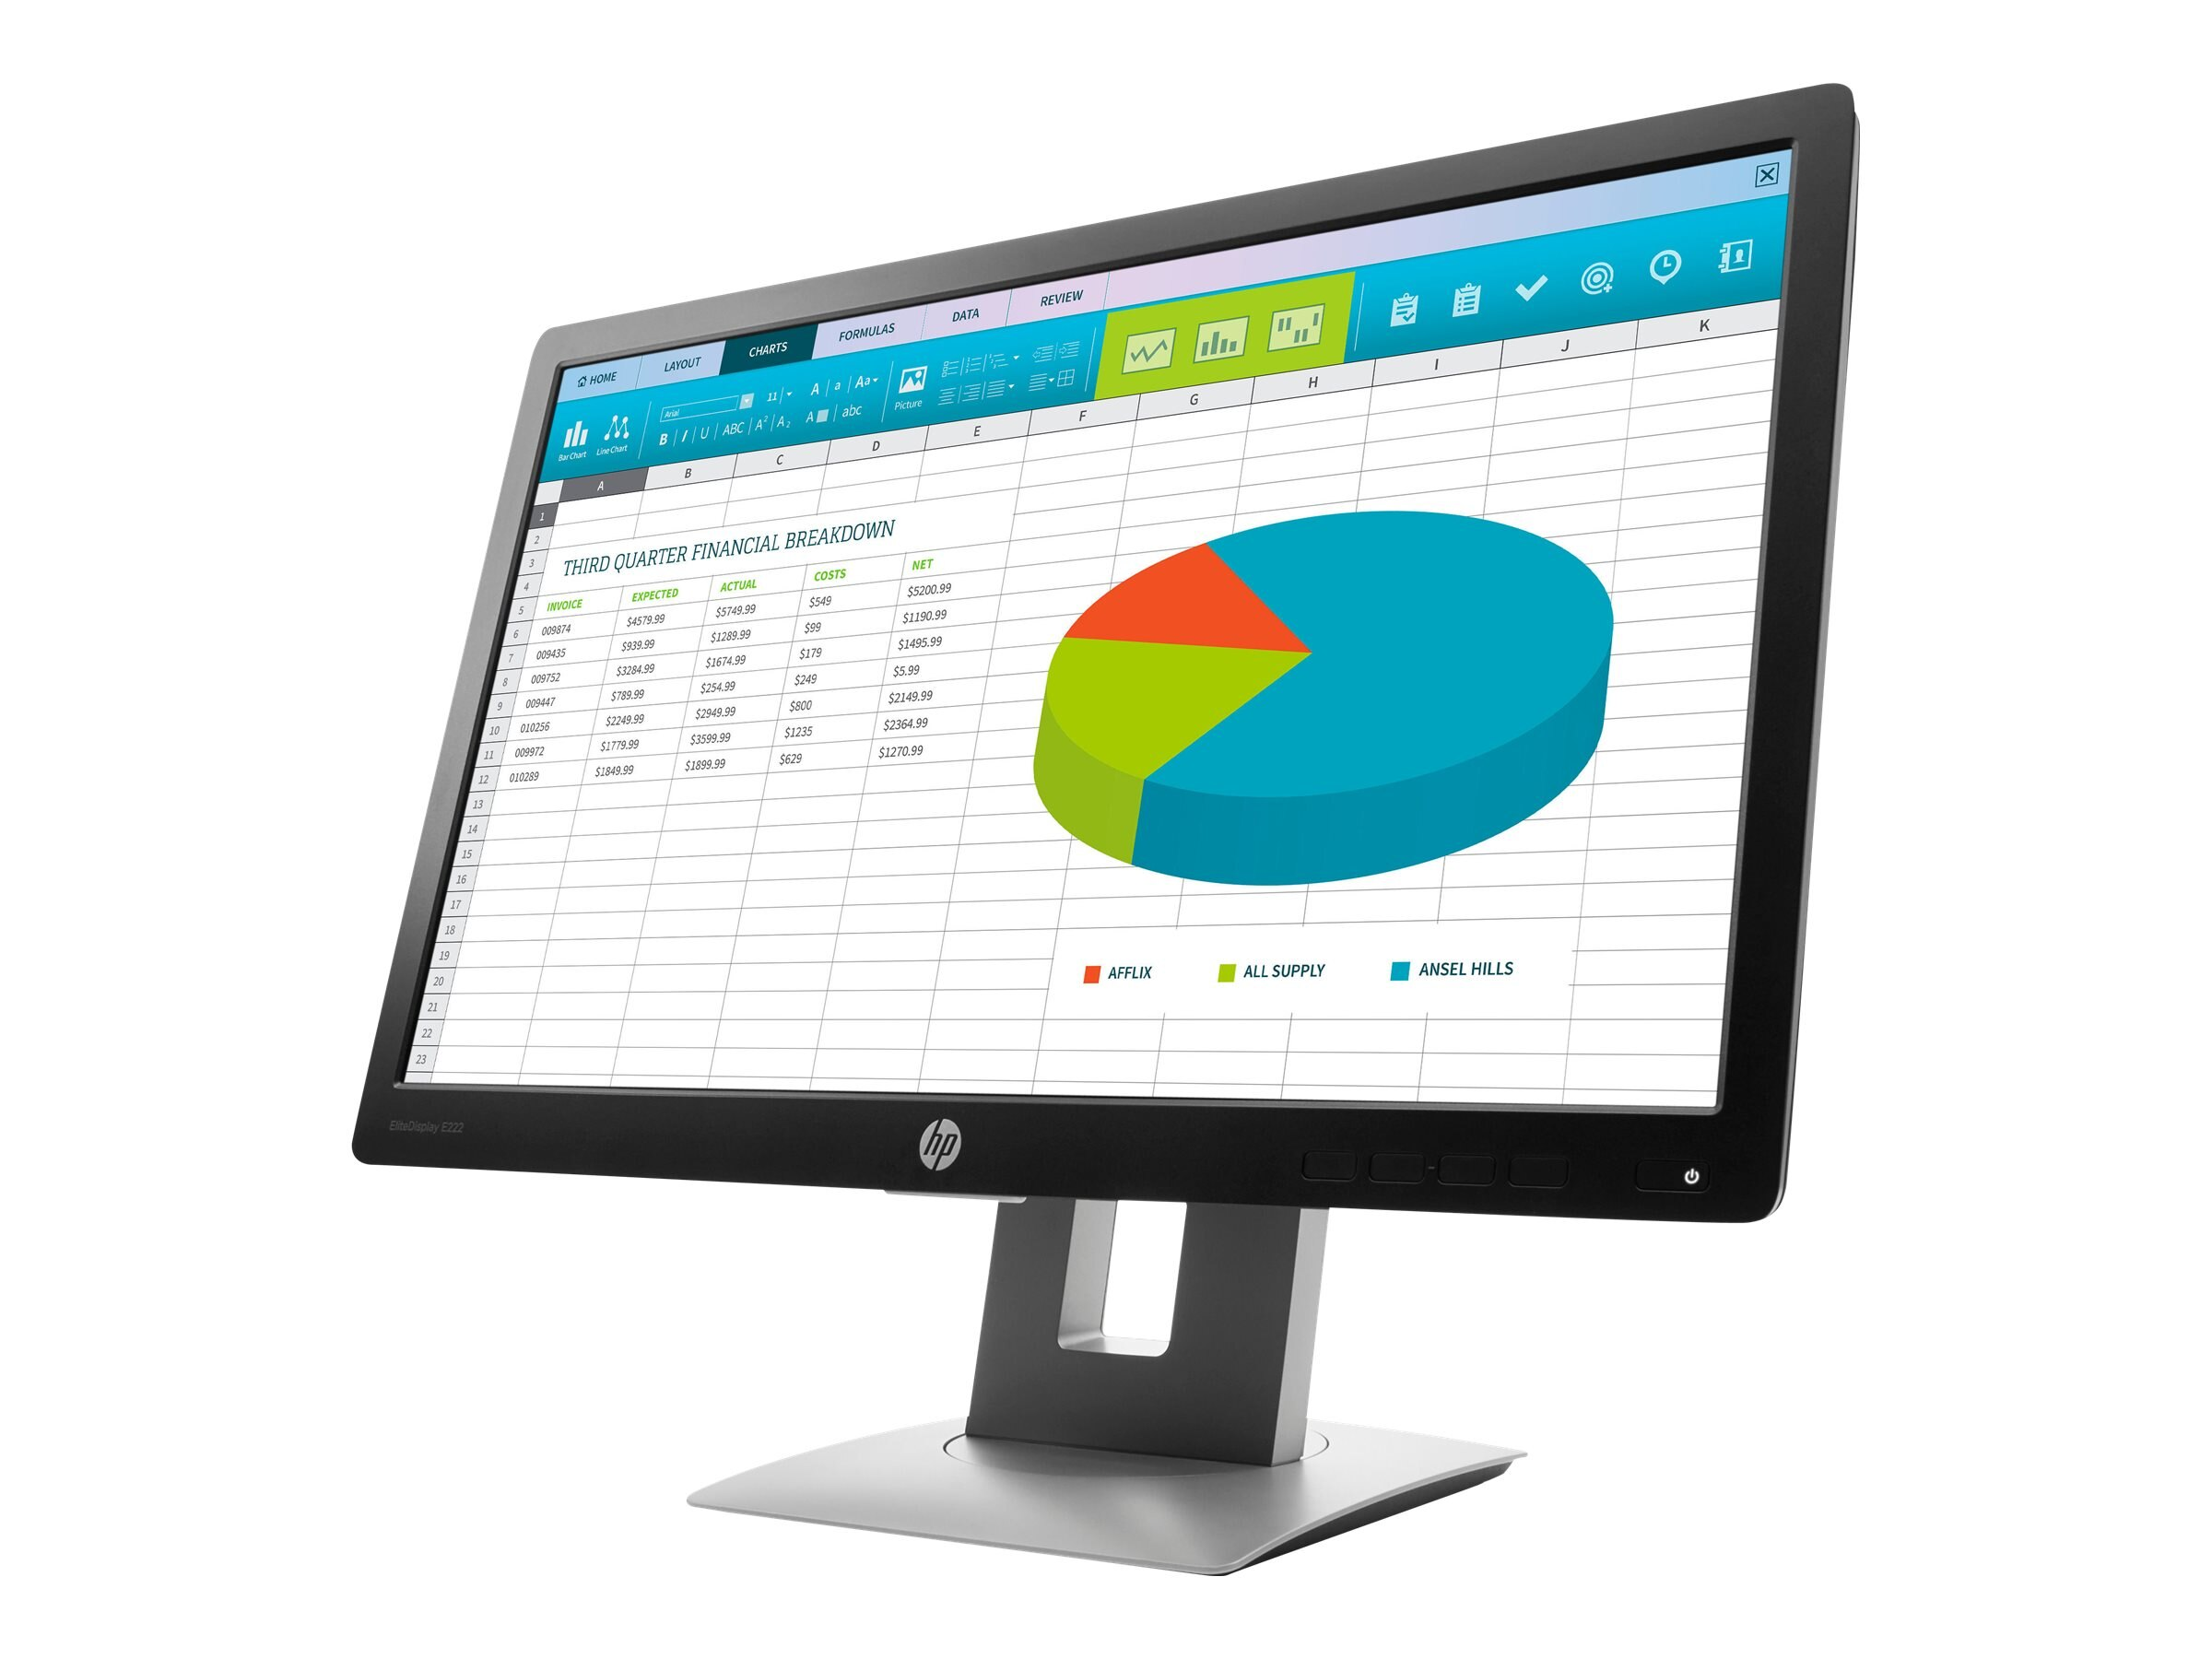 HP 21.5 E222 Full HD LED-LCD Monitor, Black, M1N96A8#ABA